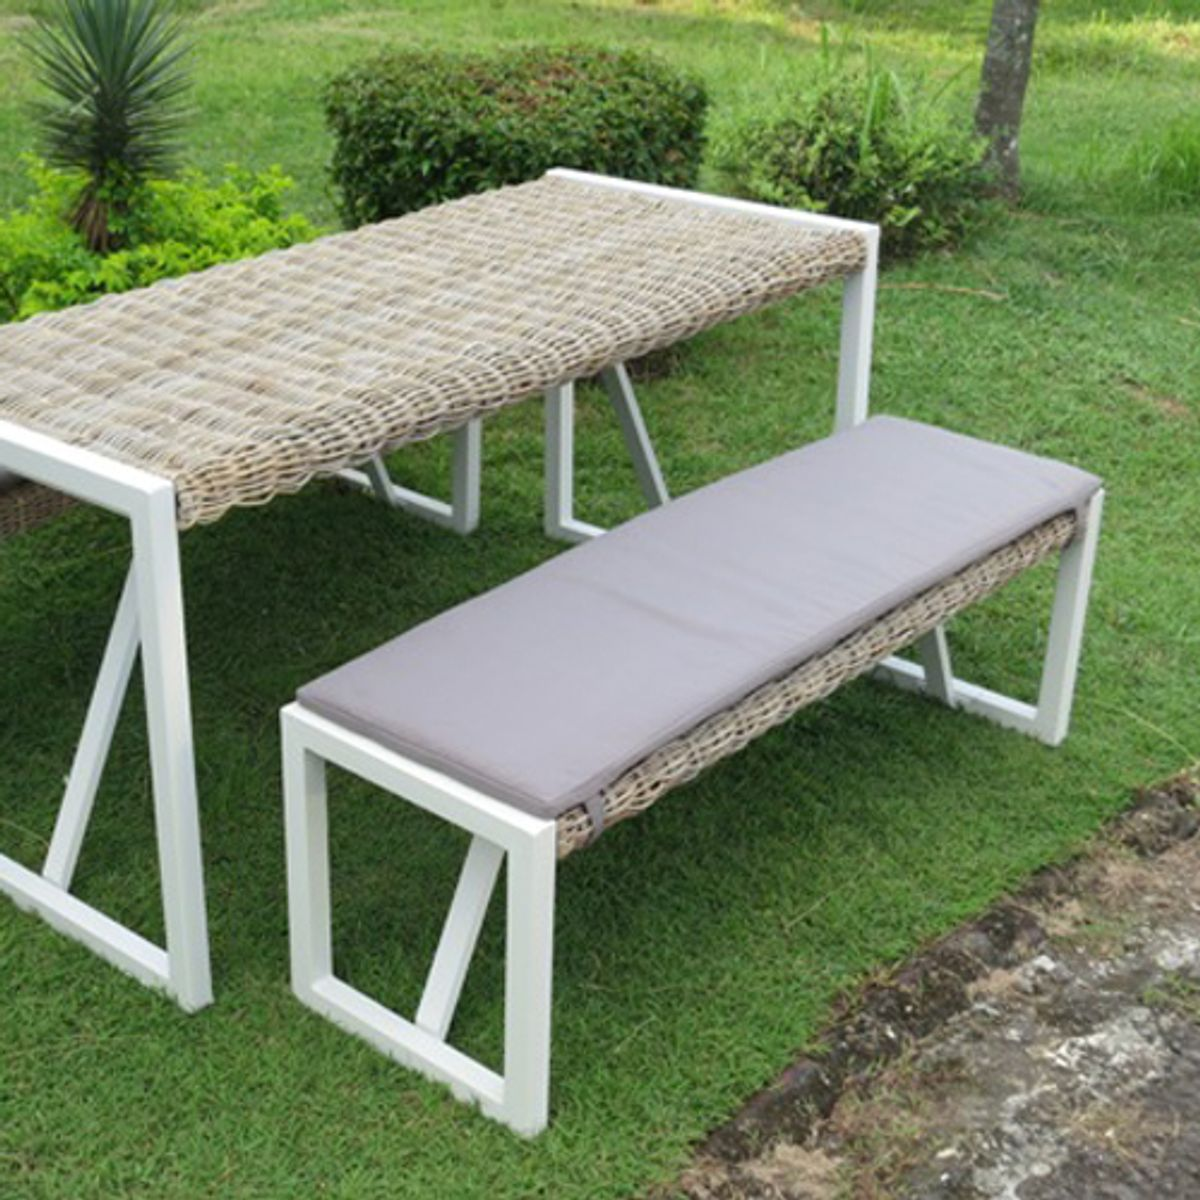 banc de jardin en kubu structure aluminium malacca city green decoclico. Black Bedroom Furniture Sets. Home Design Ideas